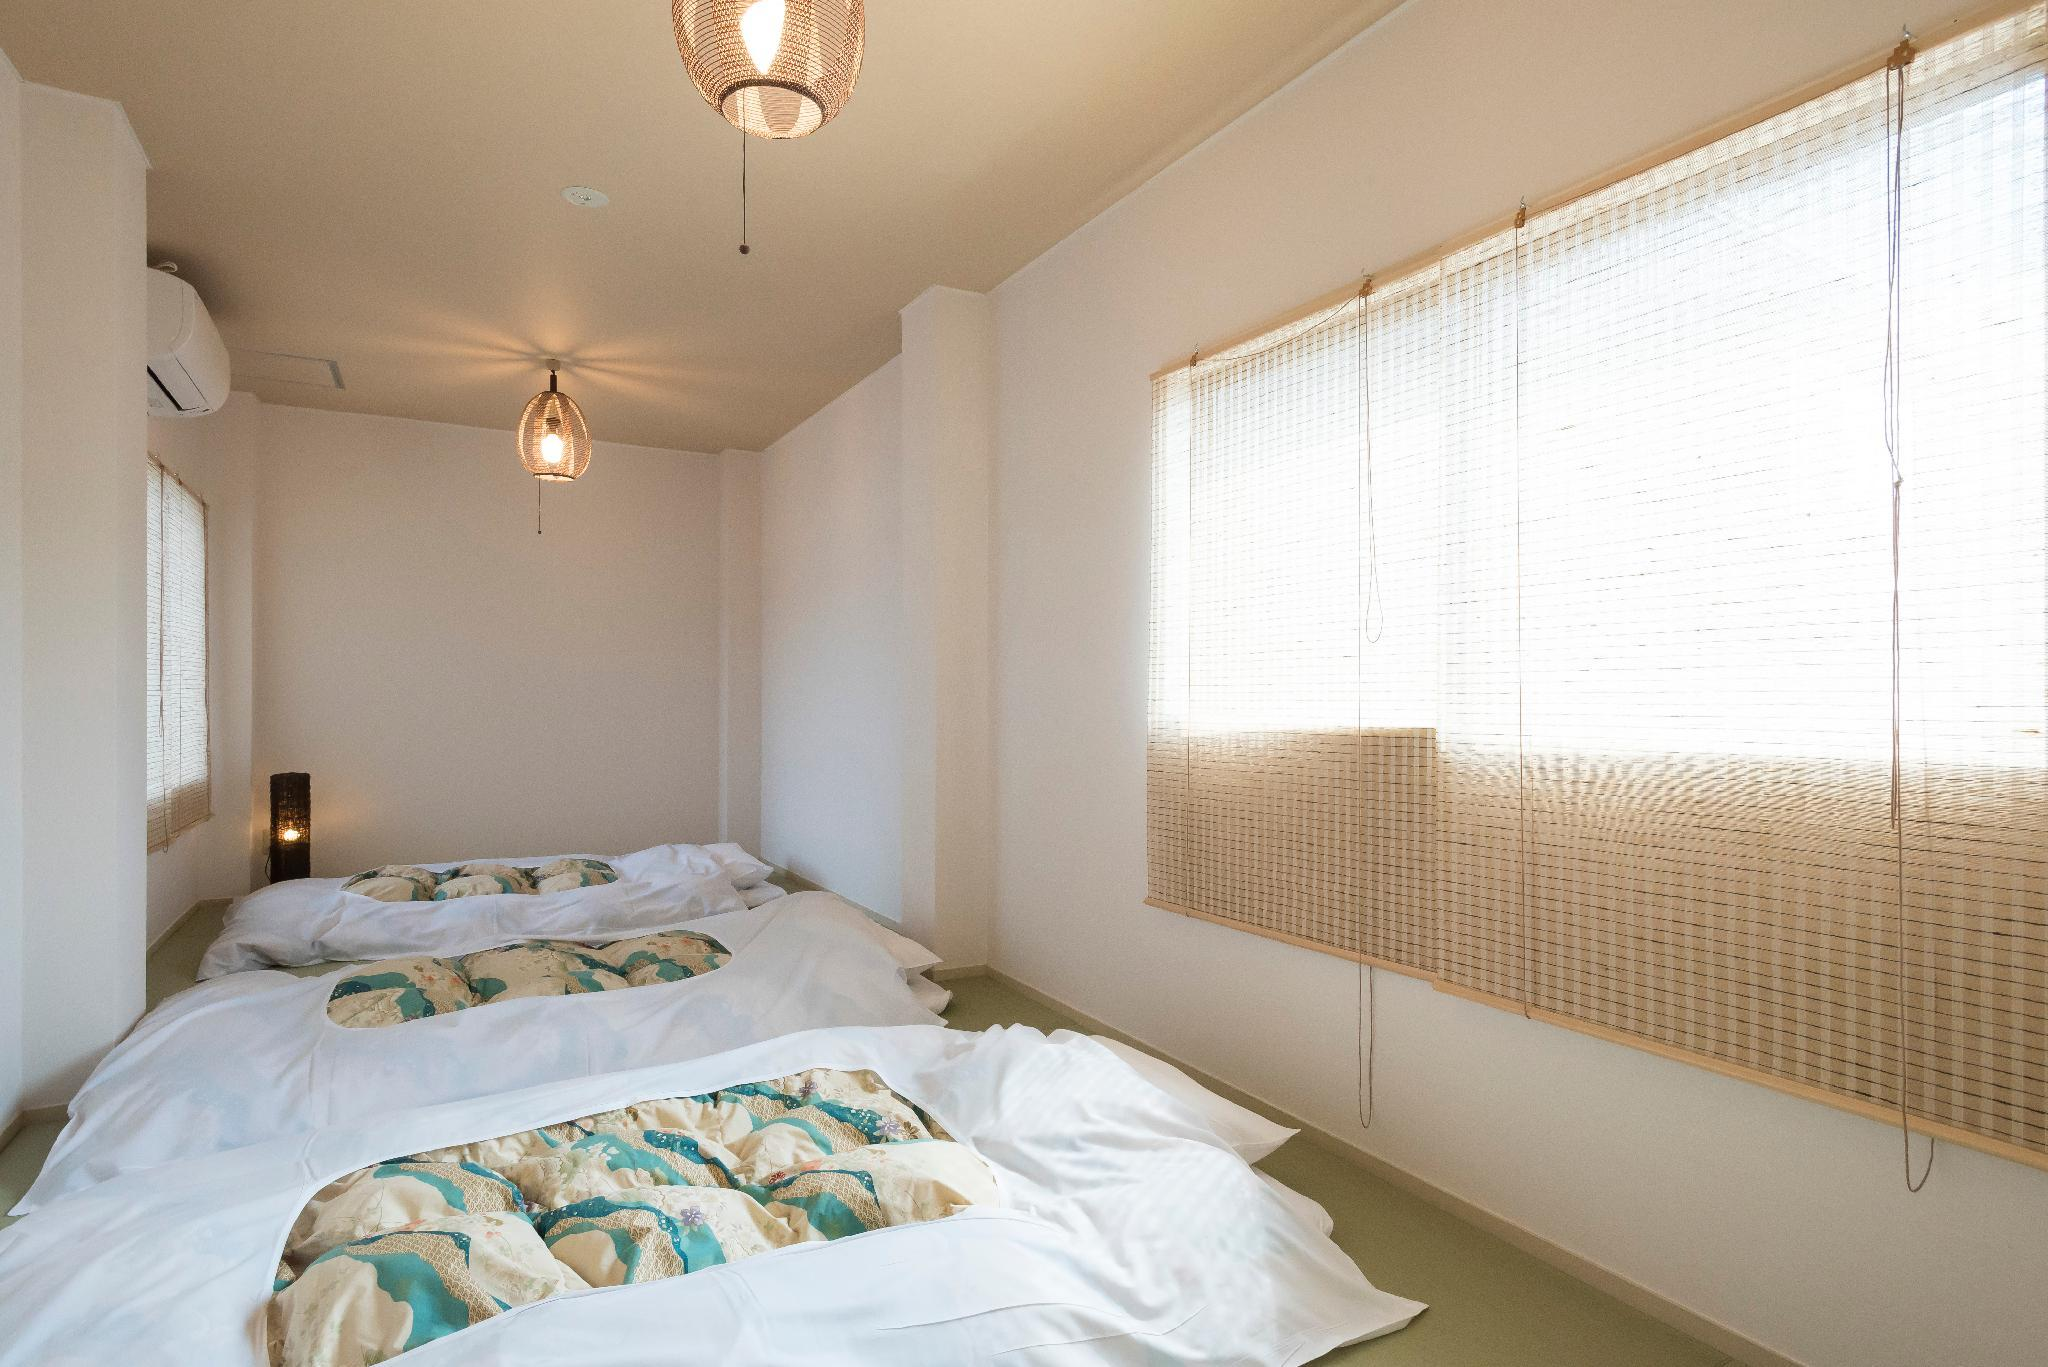 1 fő egy 4 ágyas hálóteremben – férfi (1 Person in 4-Bed Dormitory - Male Only)